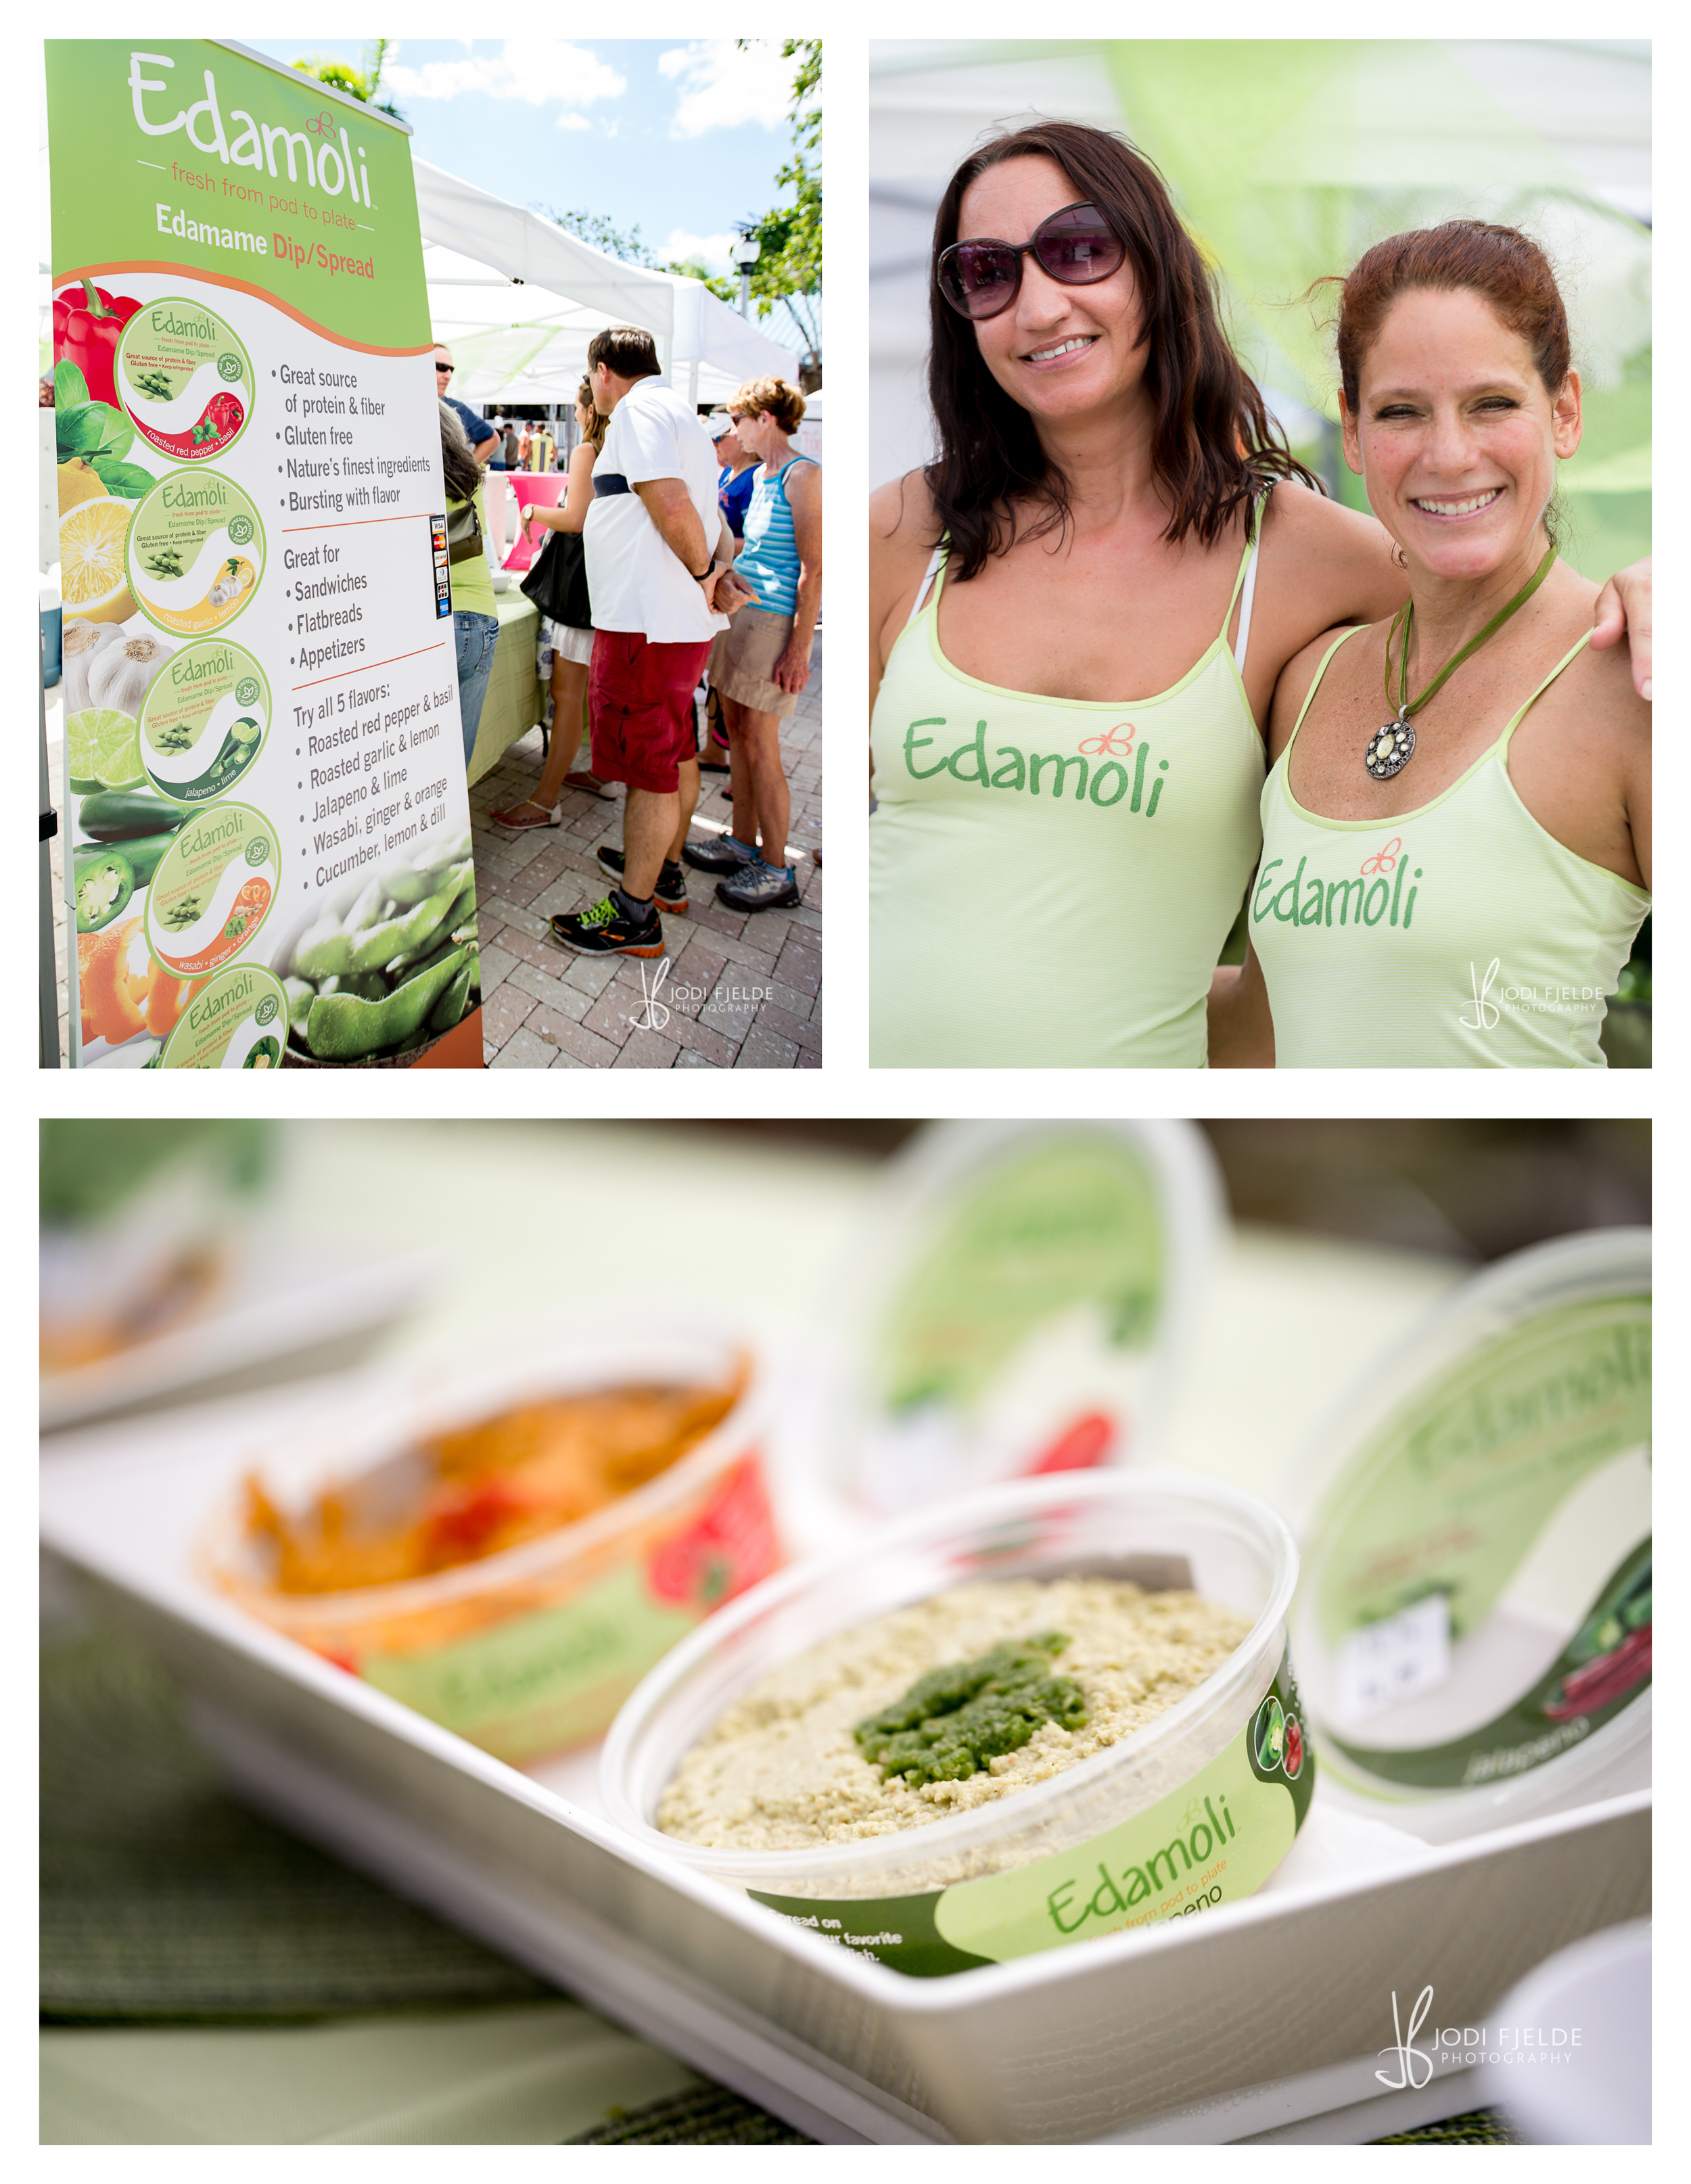 West_Palm_Beach_Green_Market_Organic_jodi_fjelde_Photography_13.jpg